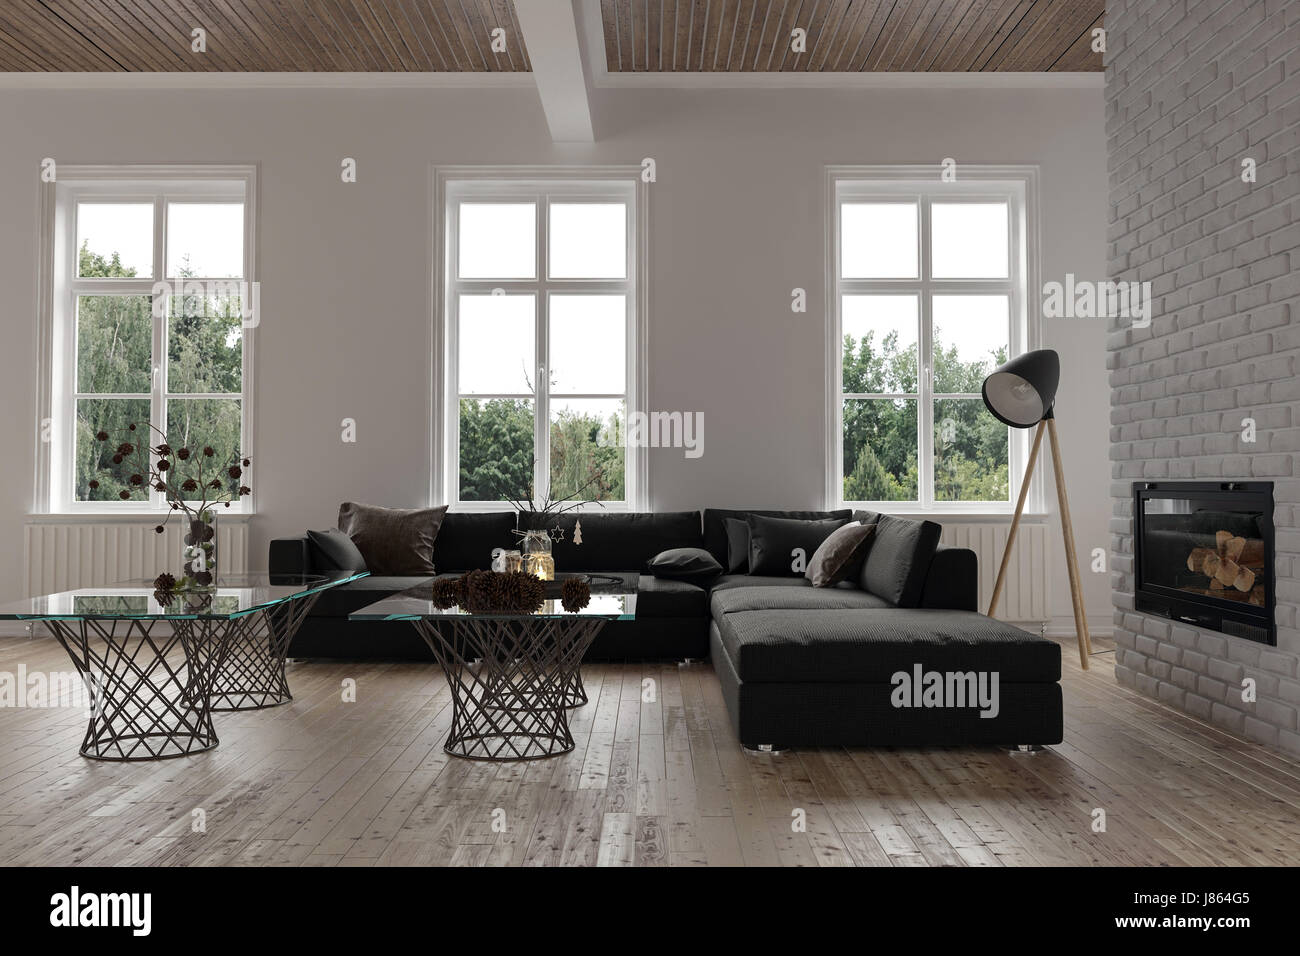 Comfortable corner in a modern living room interior with three windows a large modular couch lamp and glass coffee tables in front of a chimney fir